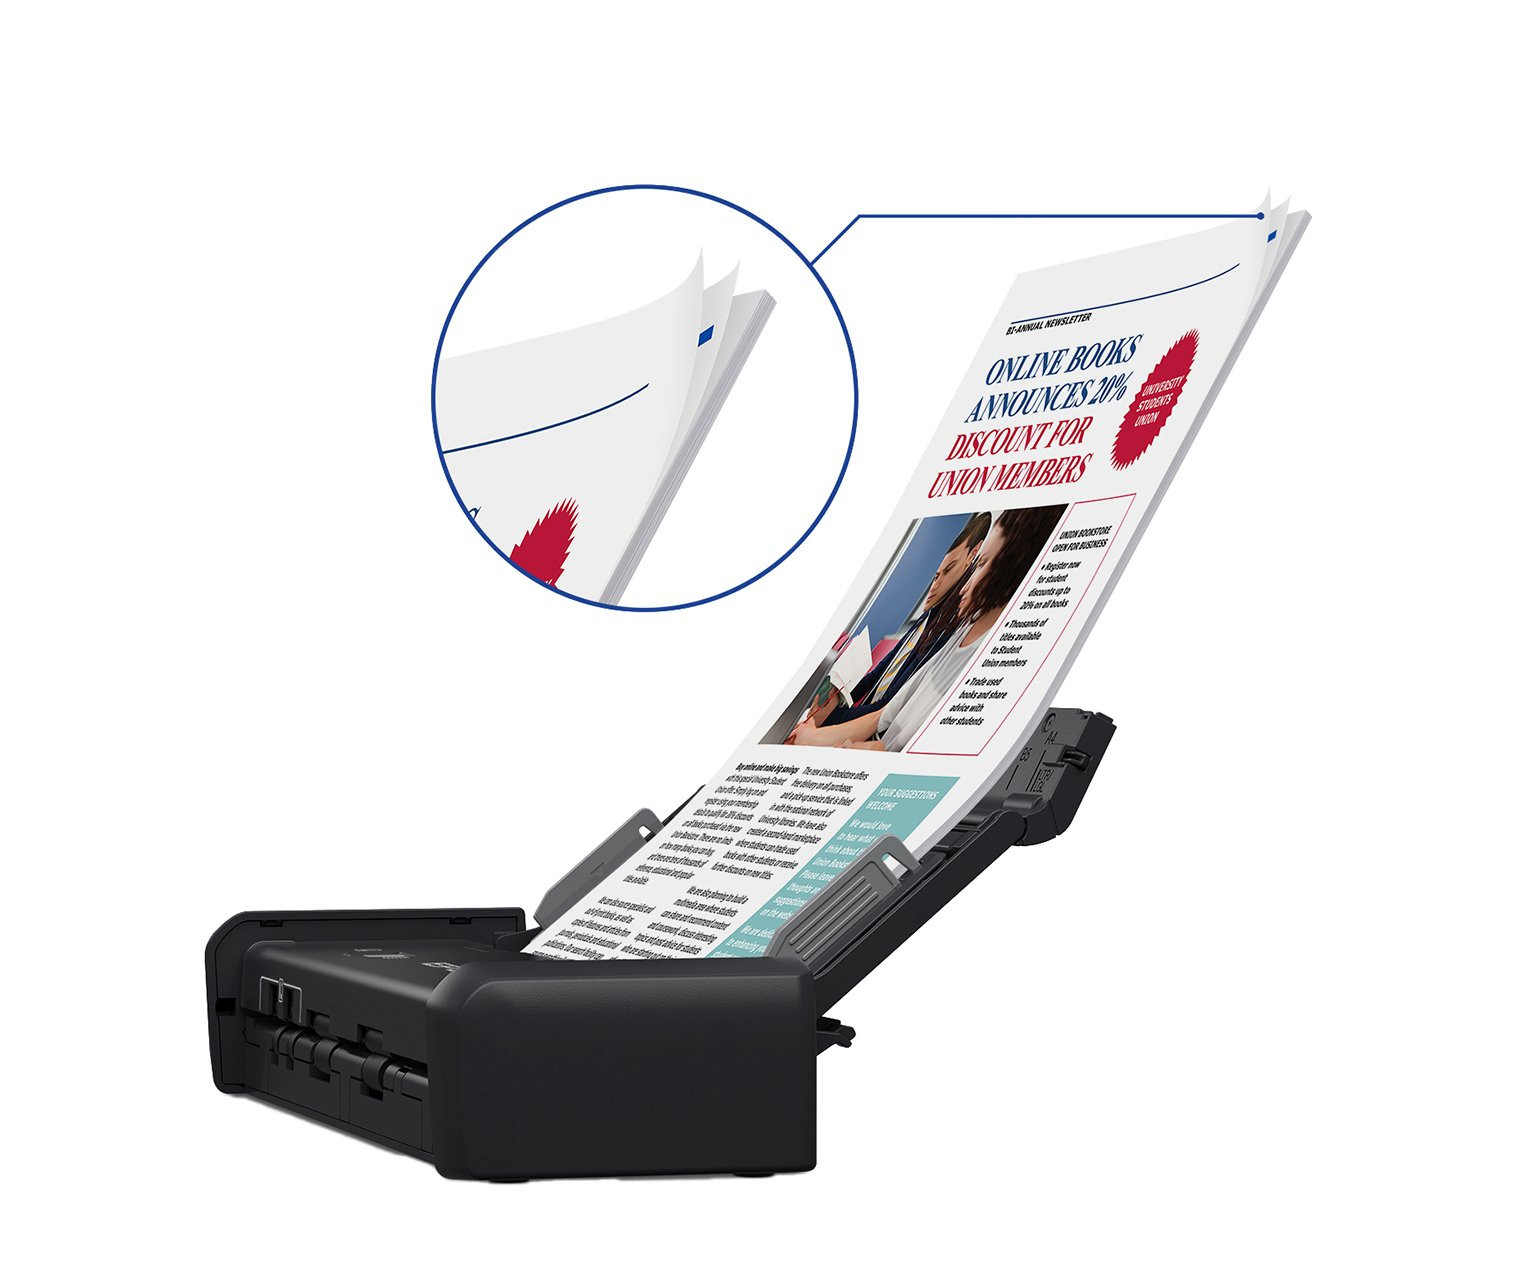 Epson WorkForce ES-200 Color Portable Document Scanner with ADF for PC and Mac, Sheet-fed and Duplex Scanning by Epson (Image #5)